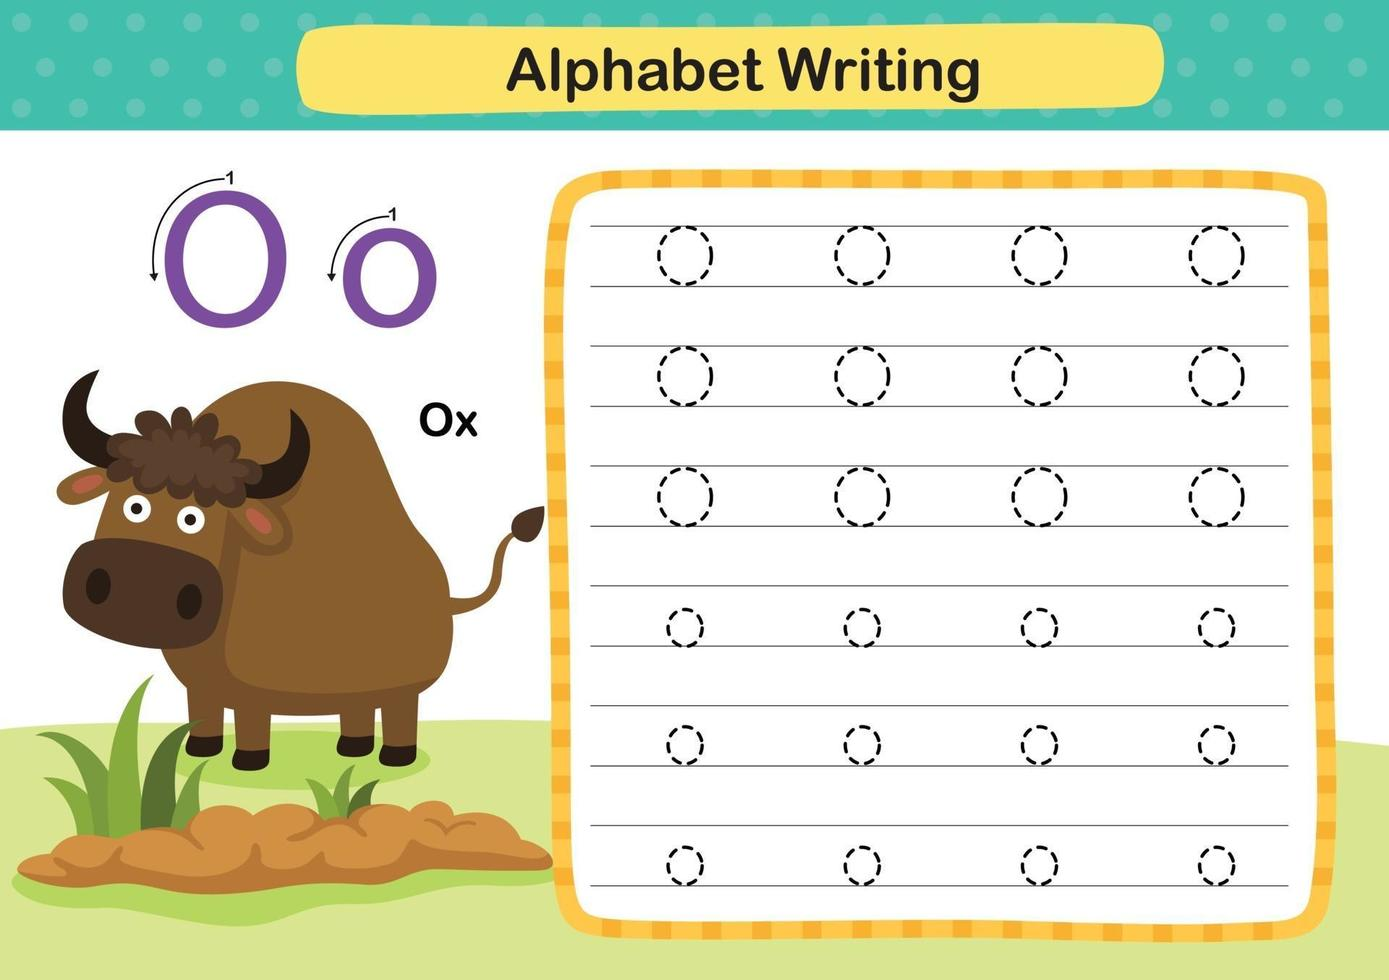 Alphabet Letter O-Ox exercise with cartoon vocabulary illustration, vector